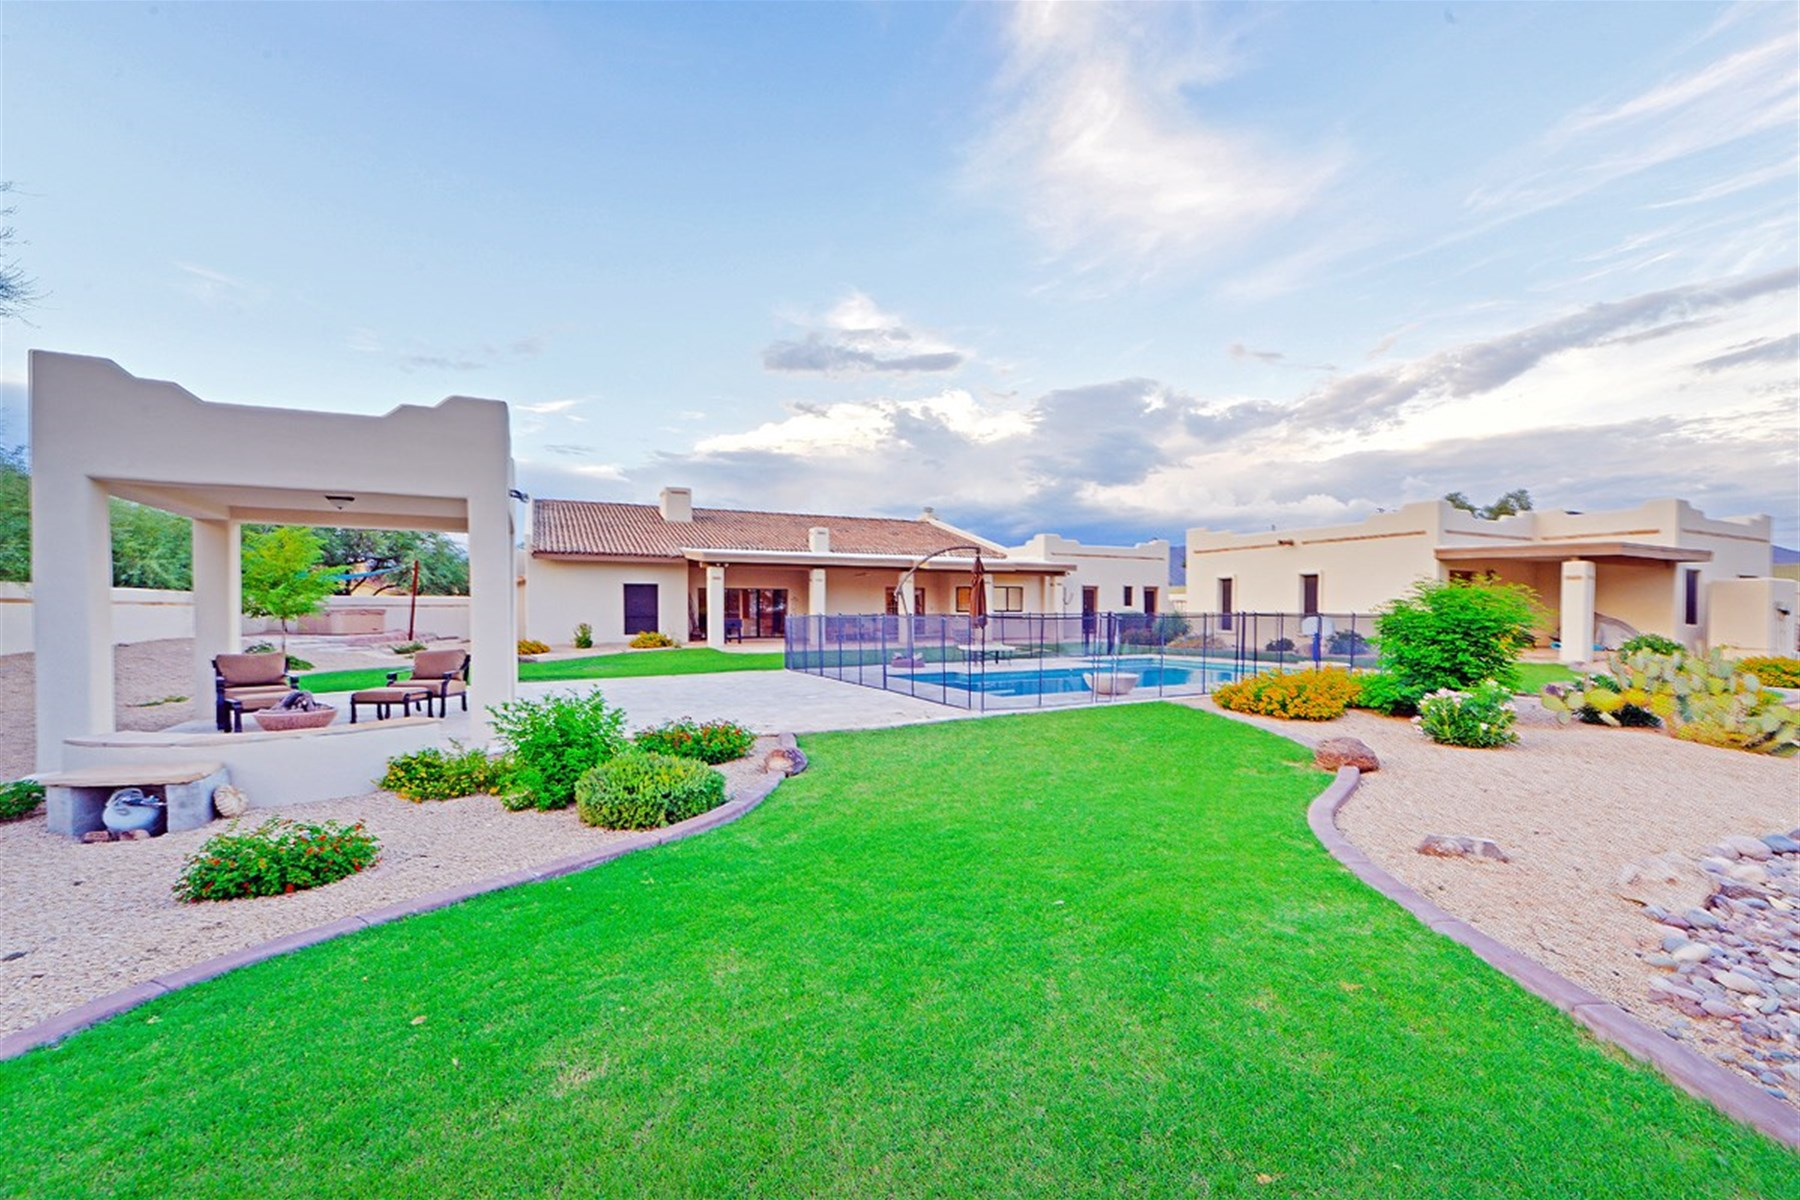 Property For Sale at At the end of a long lazy cul-de-sac is a truly sublime lush desert lot